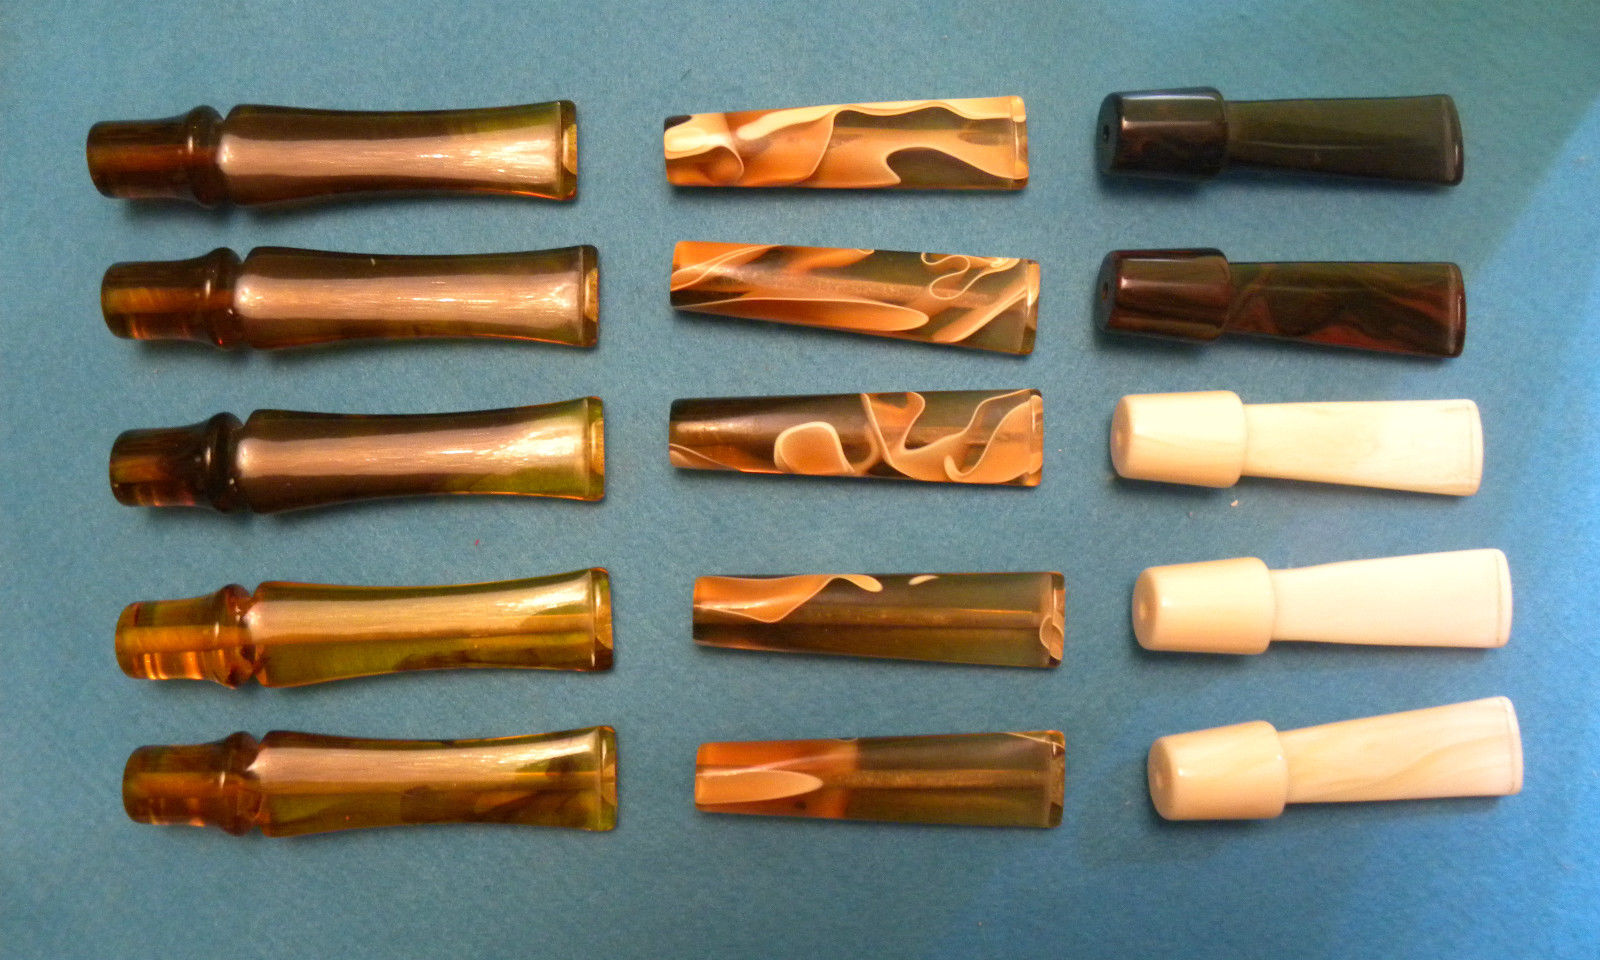 Acrylic mouthpieces